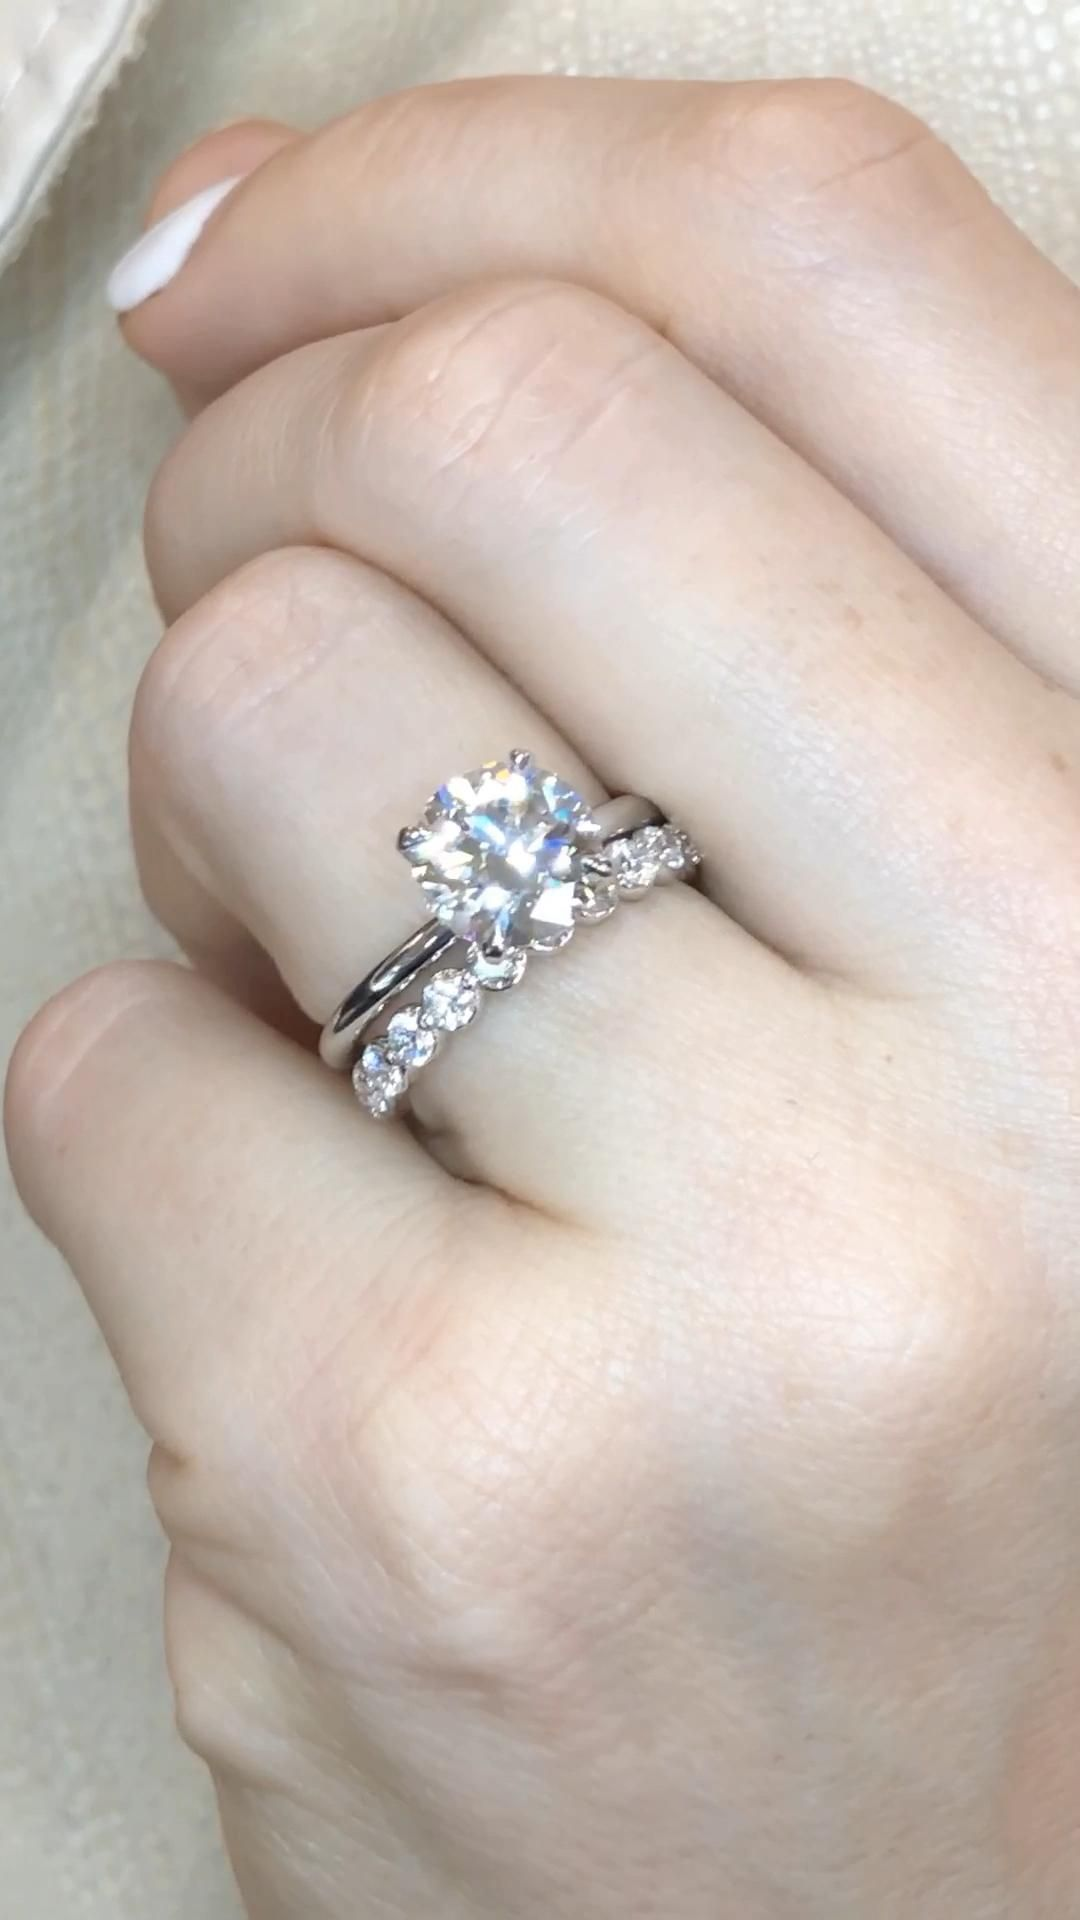 Custom diamond engagement rings and wedding bands made just for you.  A gorgeous solitaire engagement ring with hidden halo and a custom eternity diamond band. By Ascot Diamonds Atlanta.  #ascotdiamonds #engagementrings #weddingbands #customengagementring